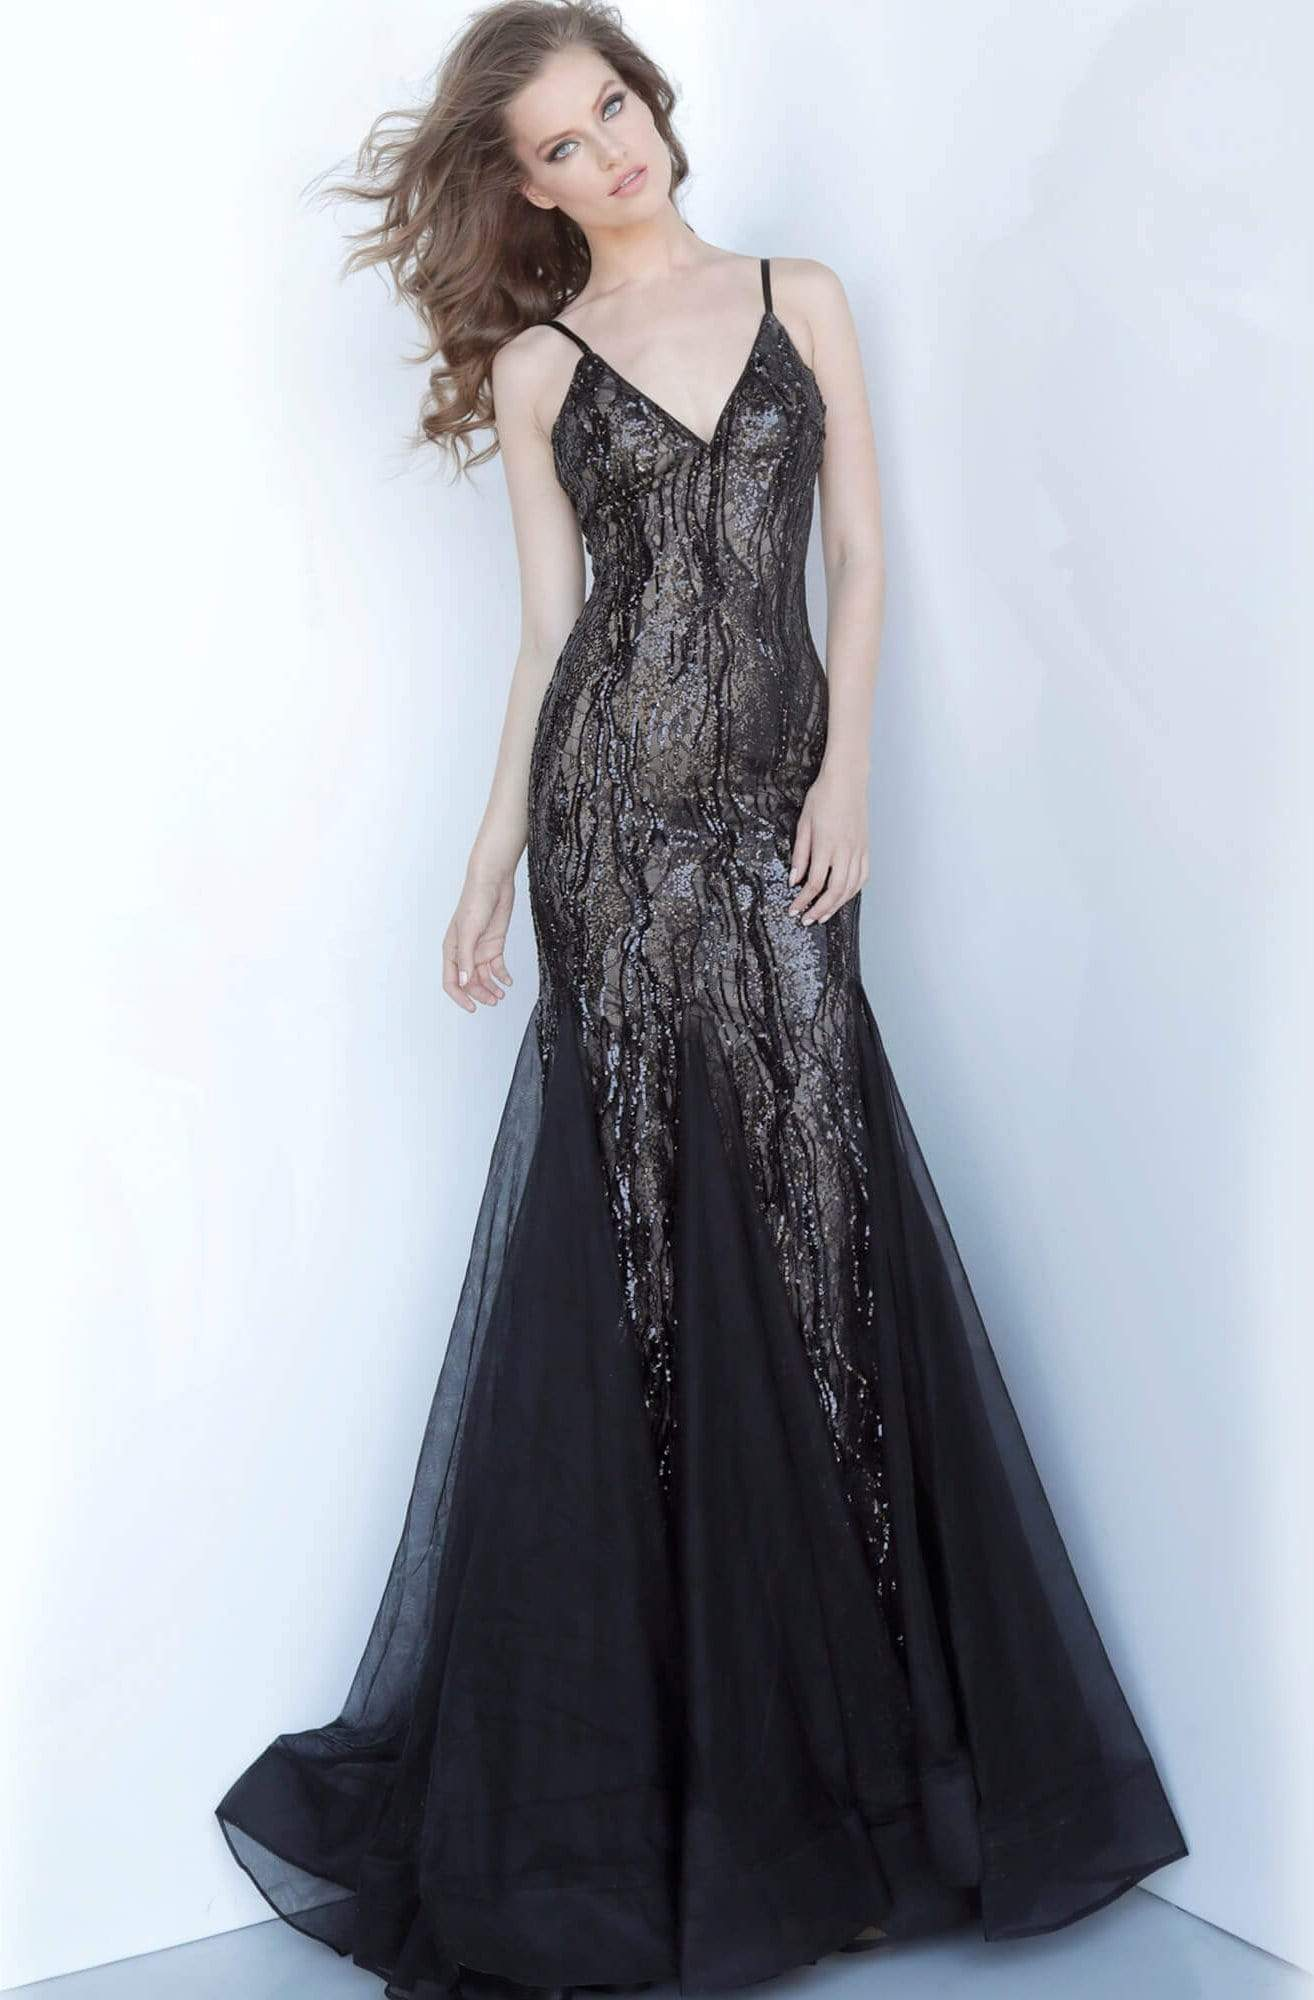 Jovani - 3382 Spaghetti Straps Novelty Sequined Mermaid Gown In Black